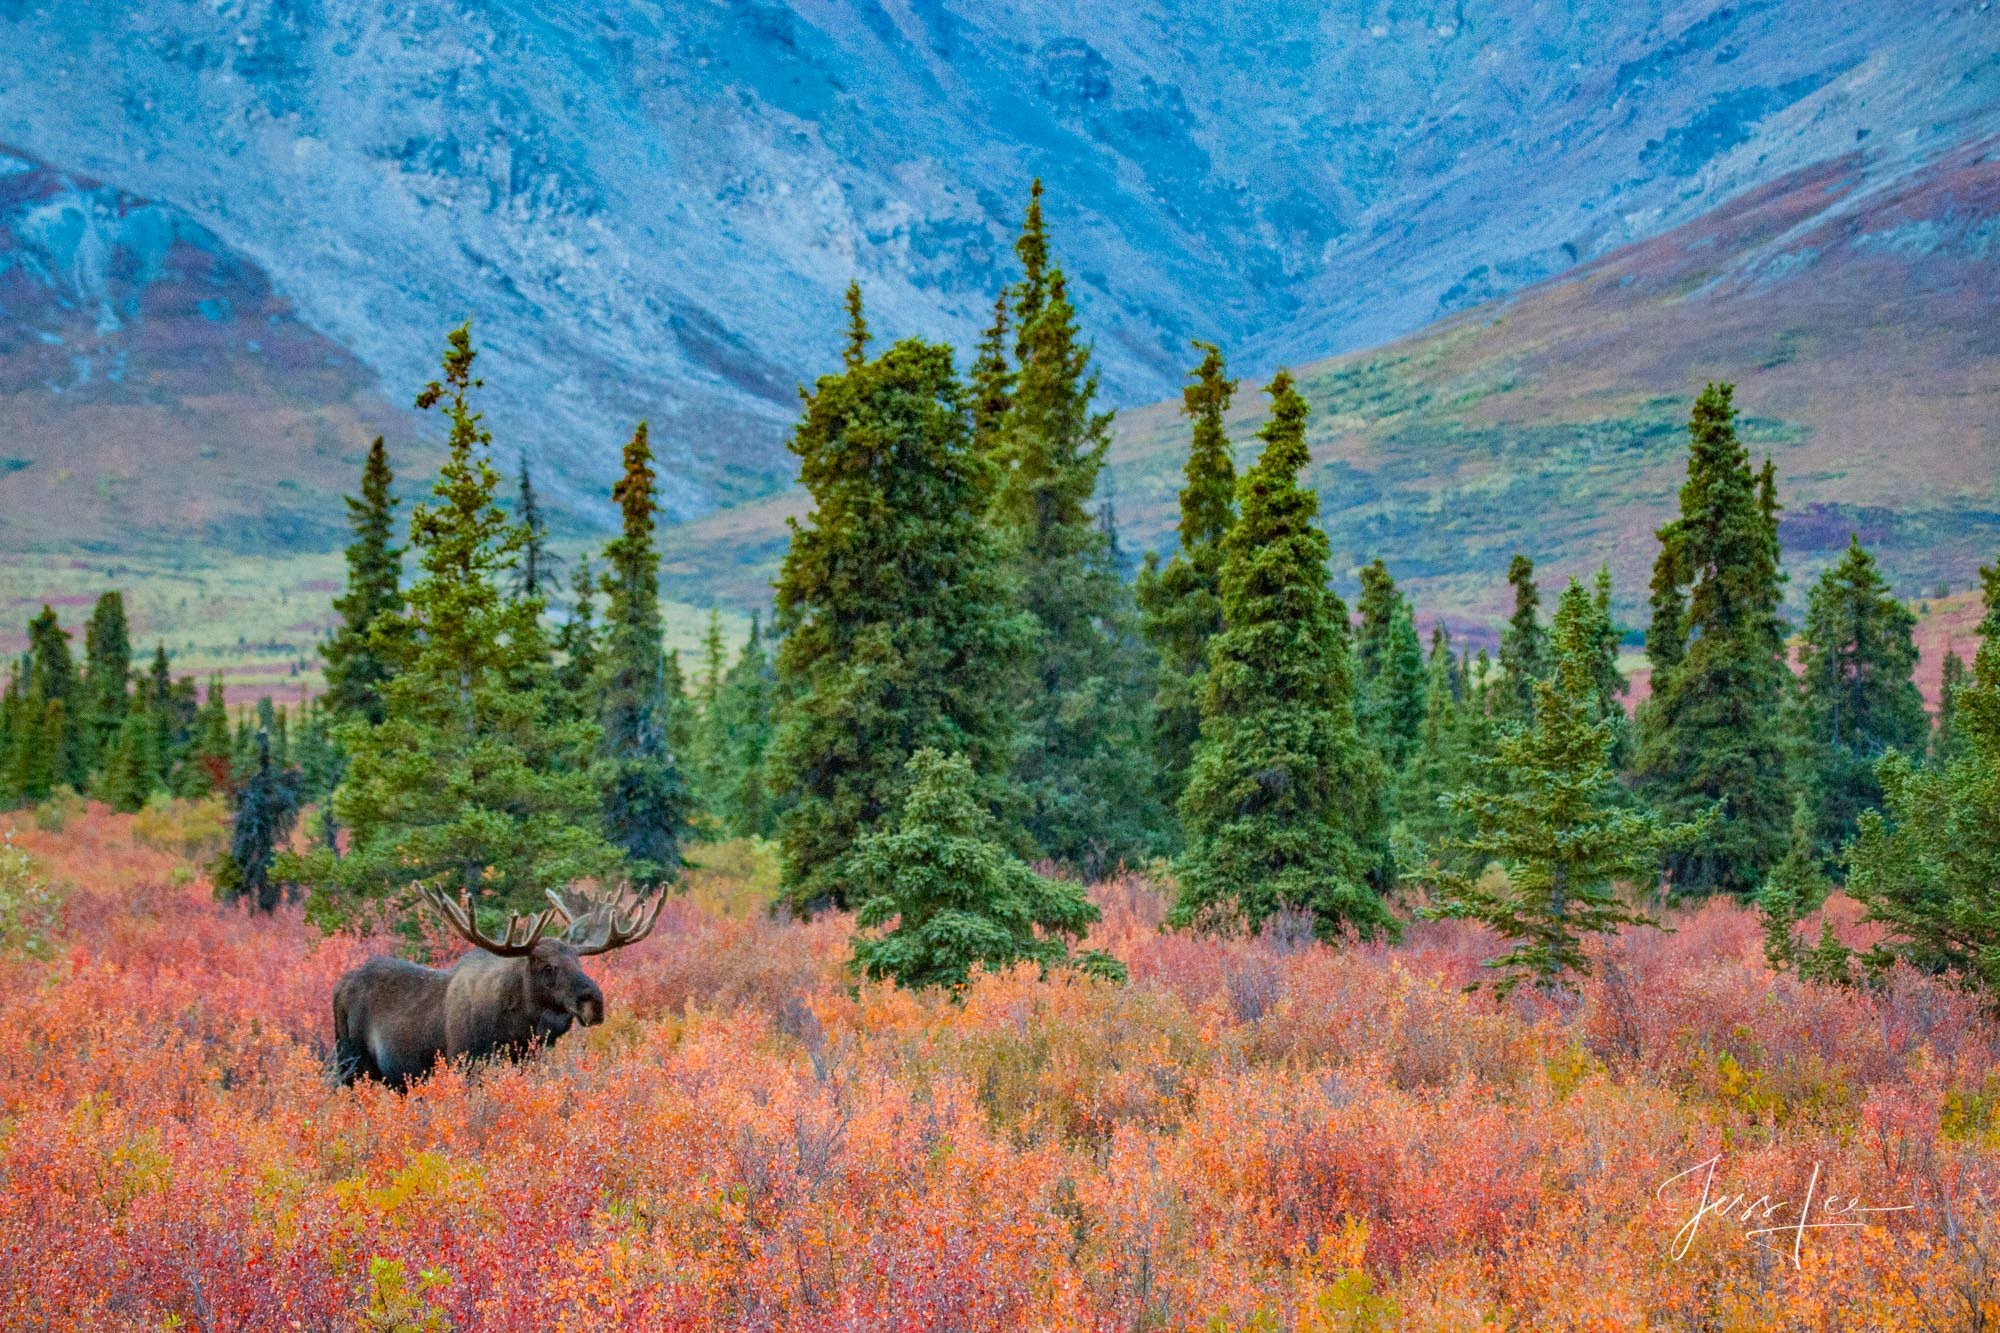 A lone moose exploring in the Alaskan tundra during autumn.